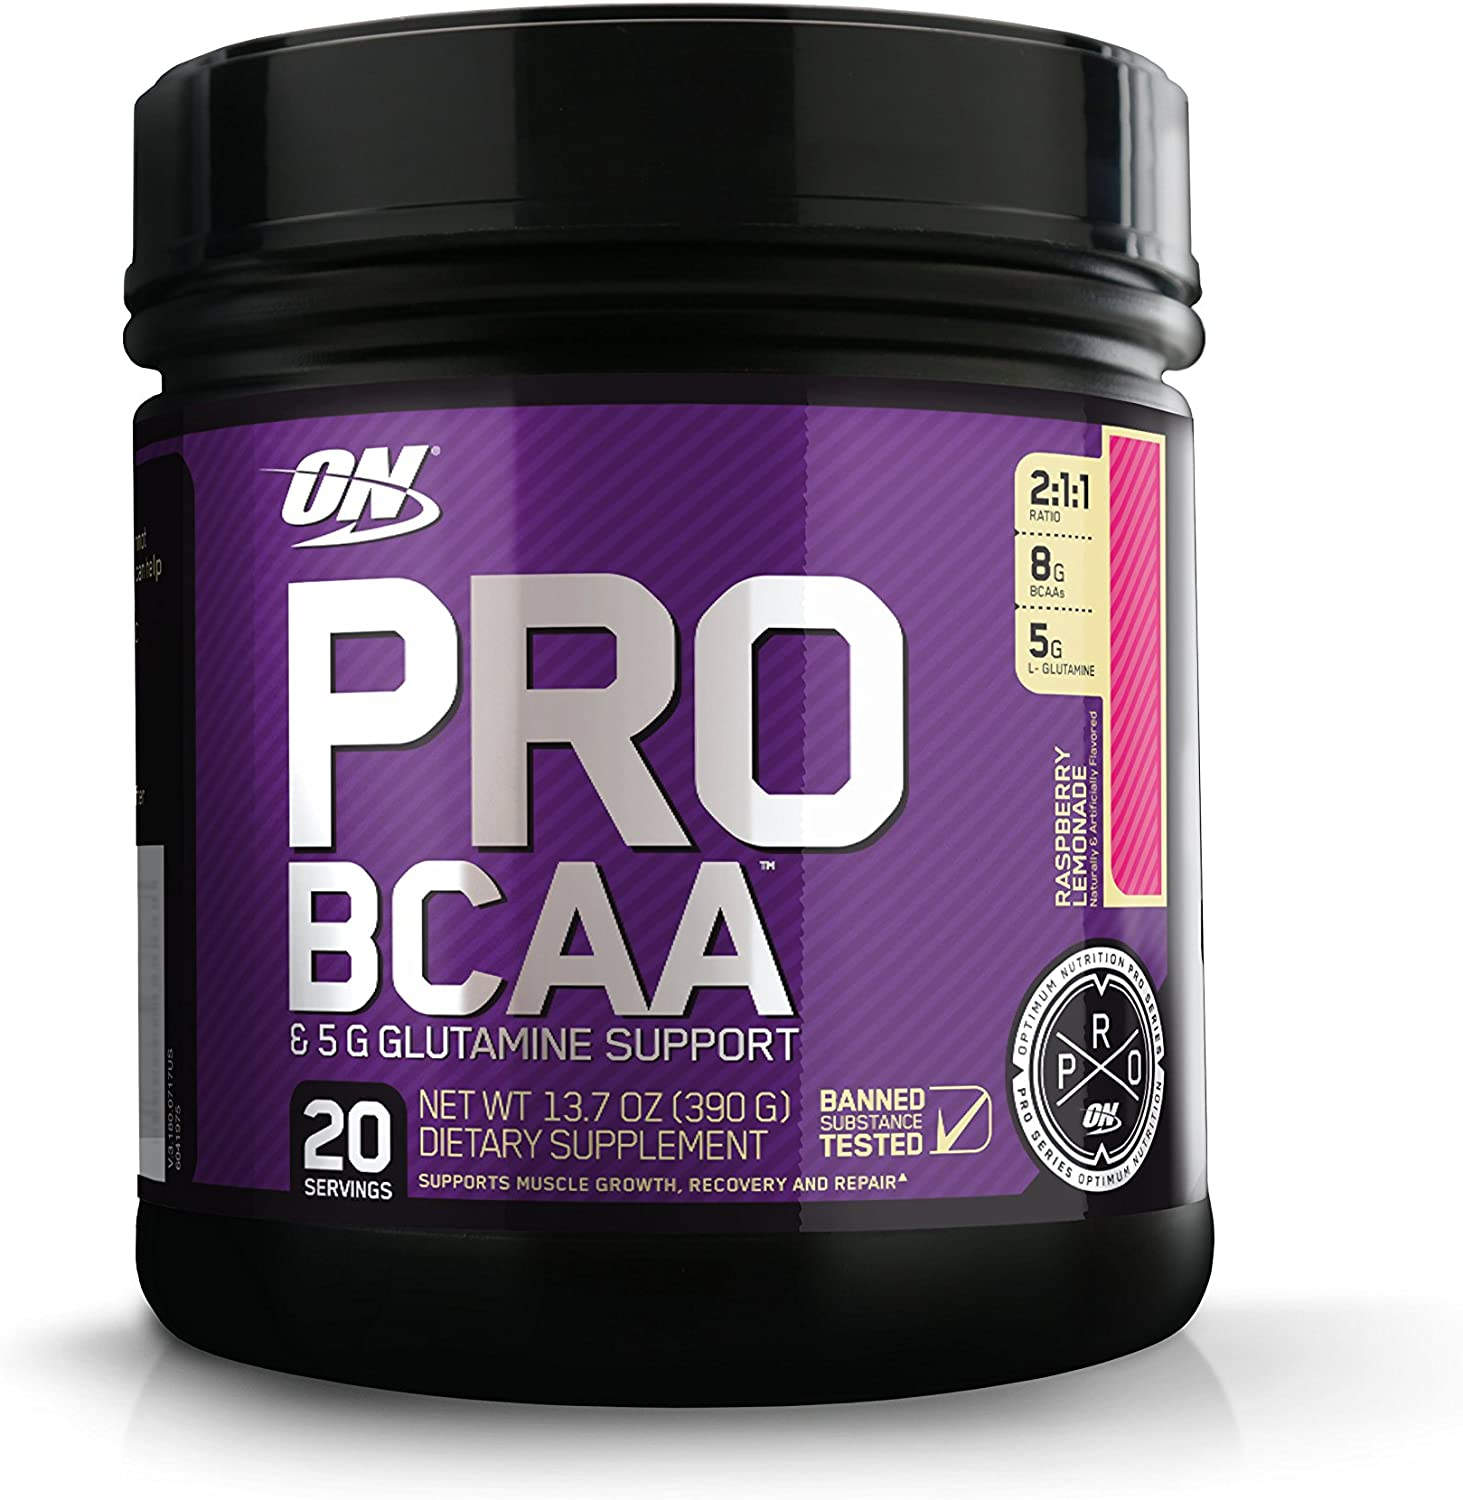 OPTIMUM NUTRITION Pro BCAA Powder with Glutamine, Raspberry Lemonade, Keto Friendly Branched Chain Amino Acids, 20 Servings Packaging May Vary